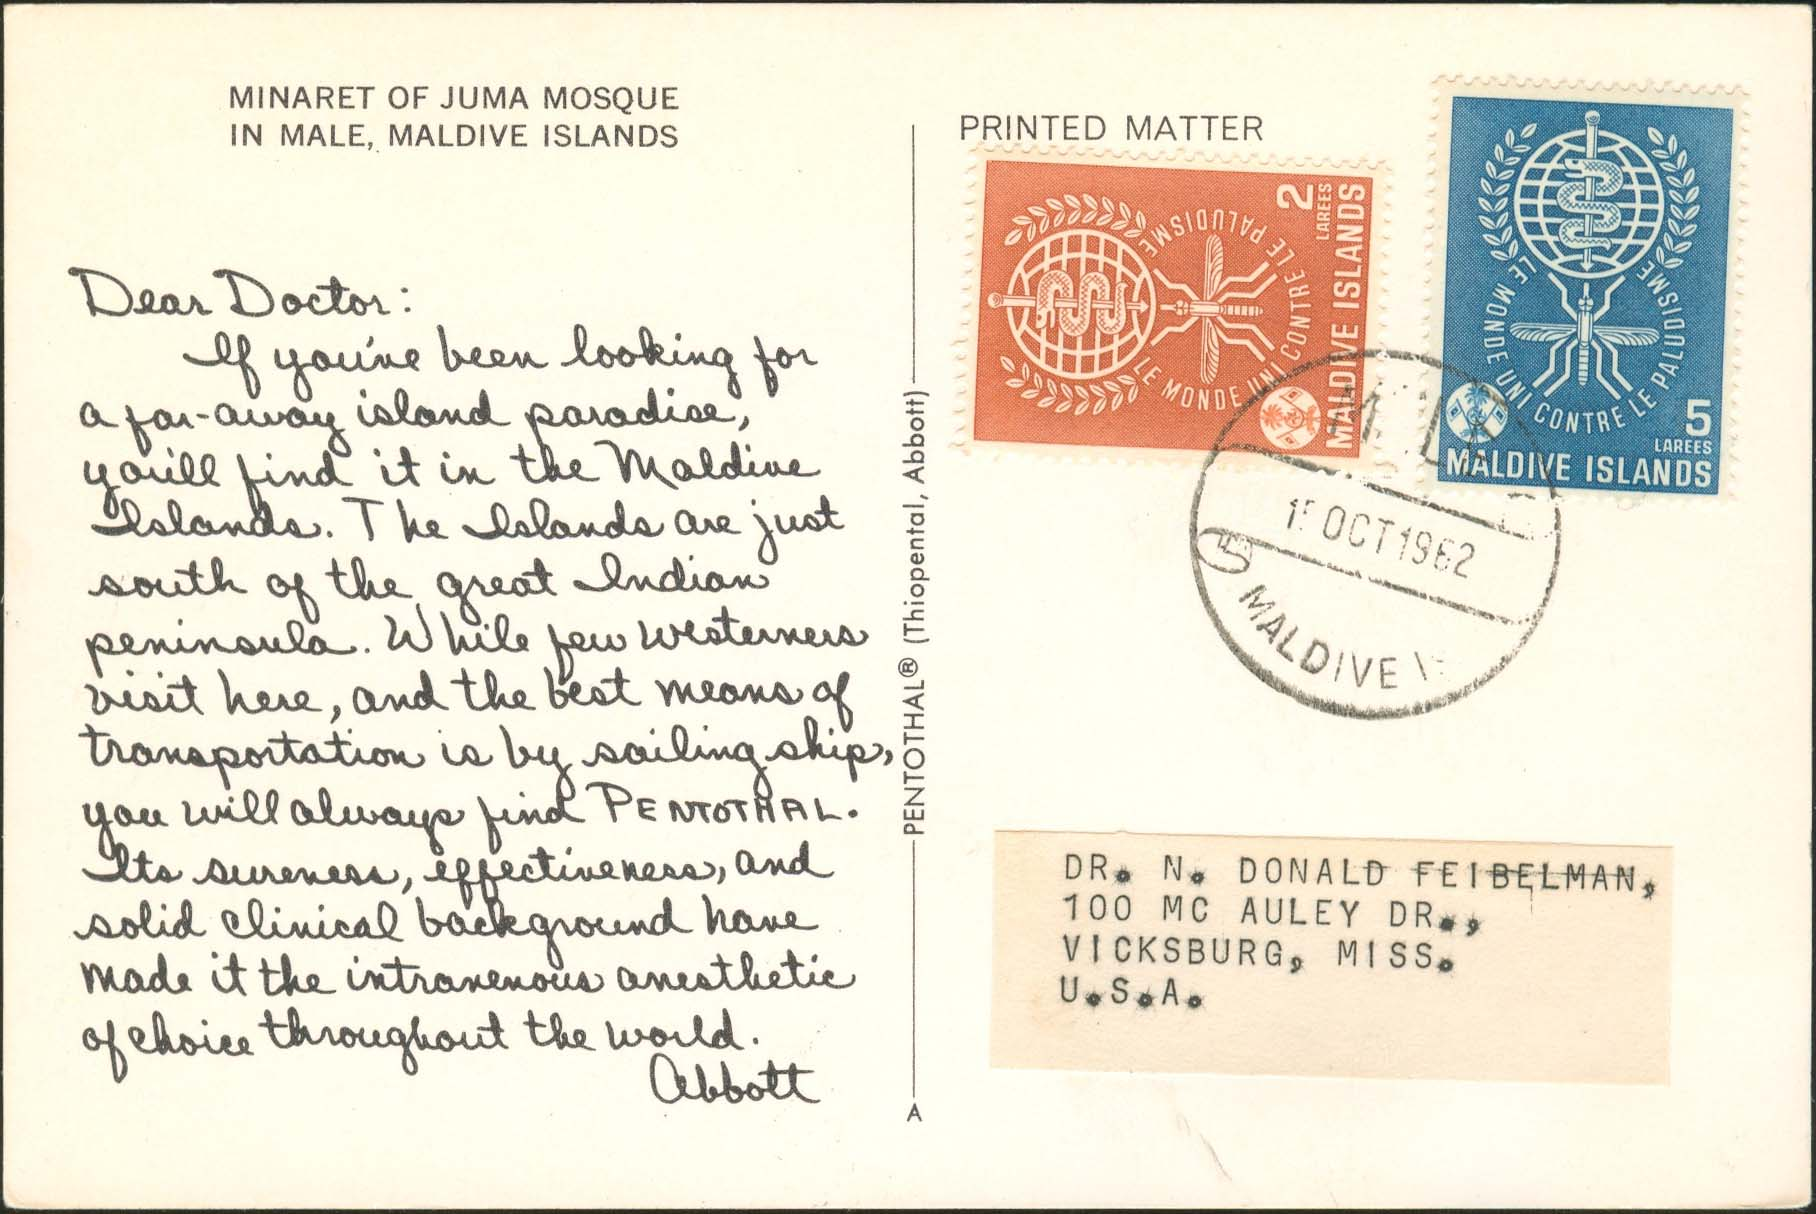 Dear Doctor Postcard - Type A - United States - 1962, Oct 15